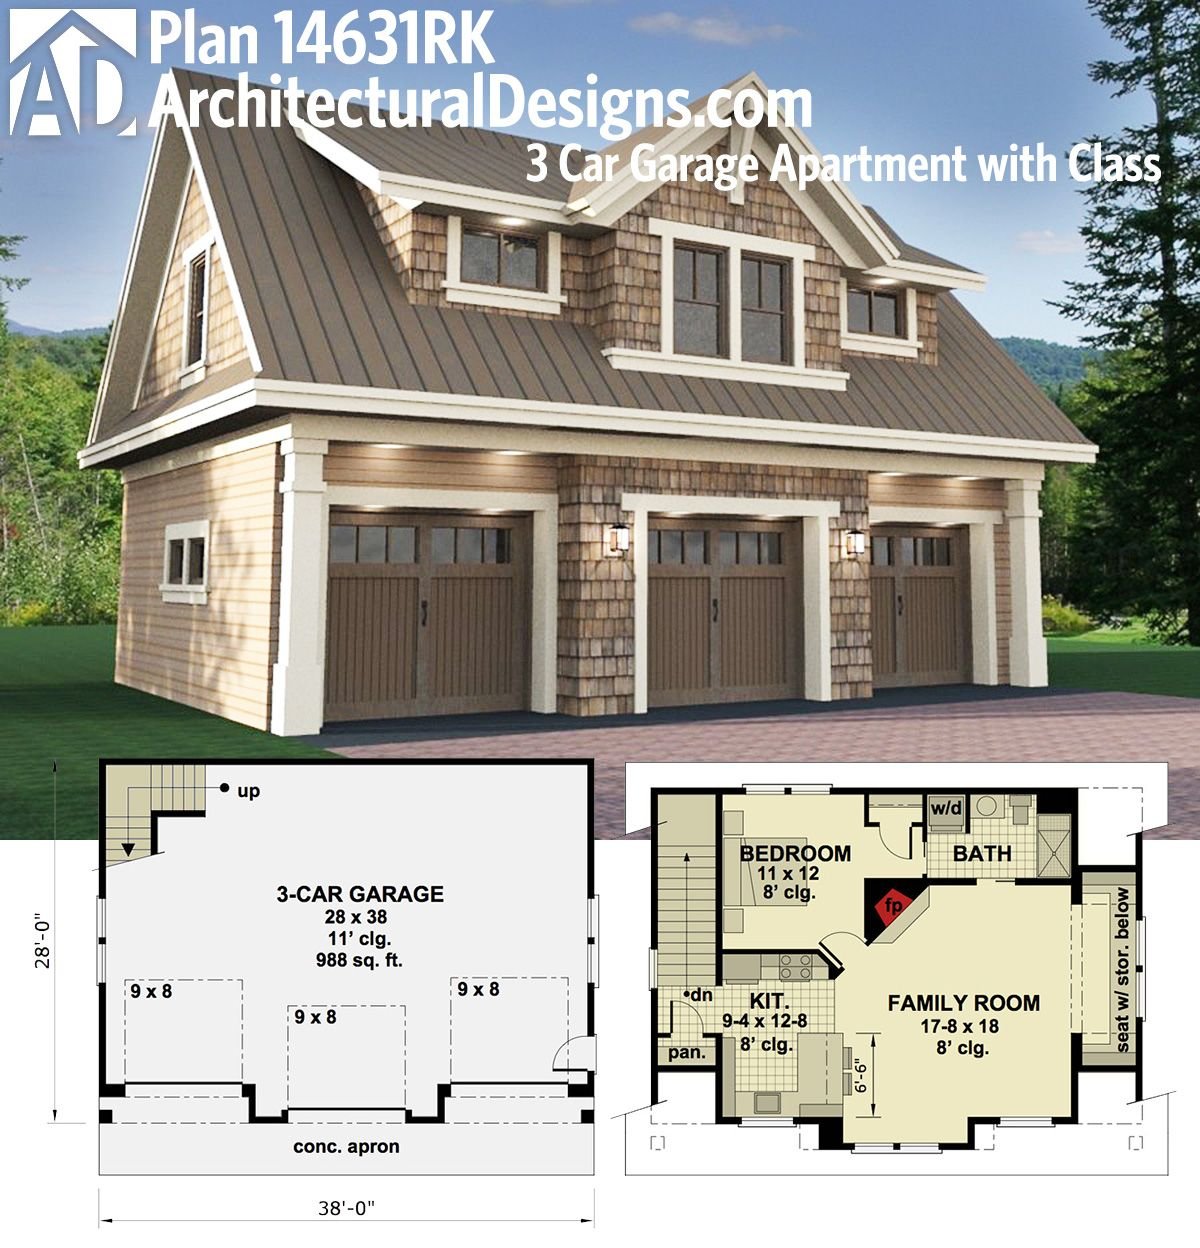 Plan 14631rk 3 car garage apartment with class for 3 garage house plans